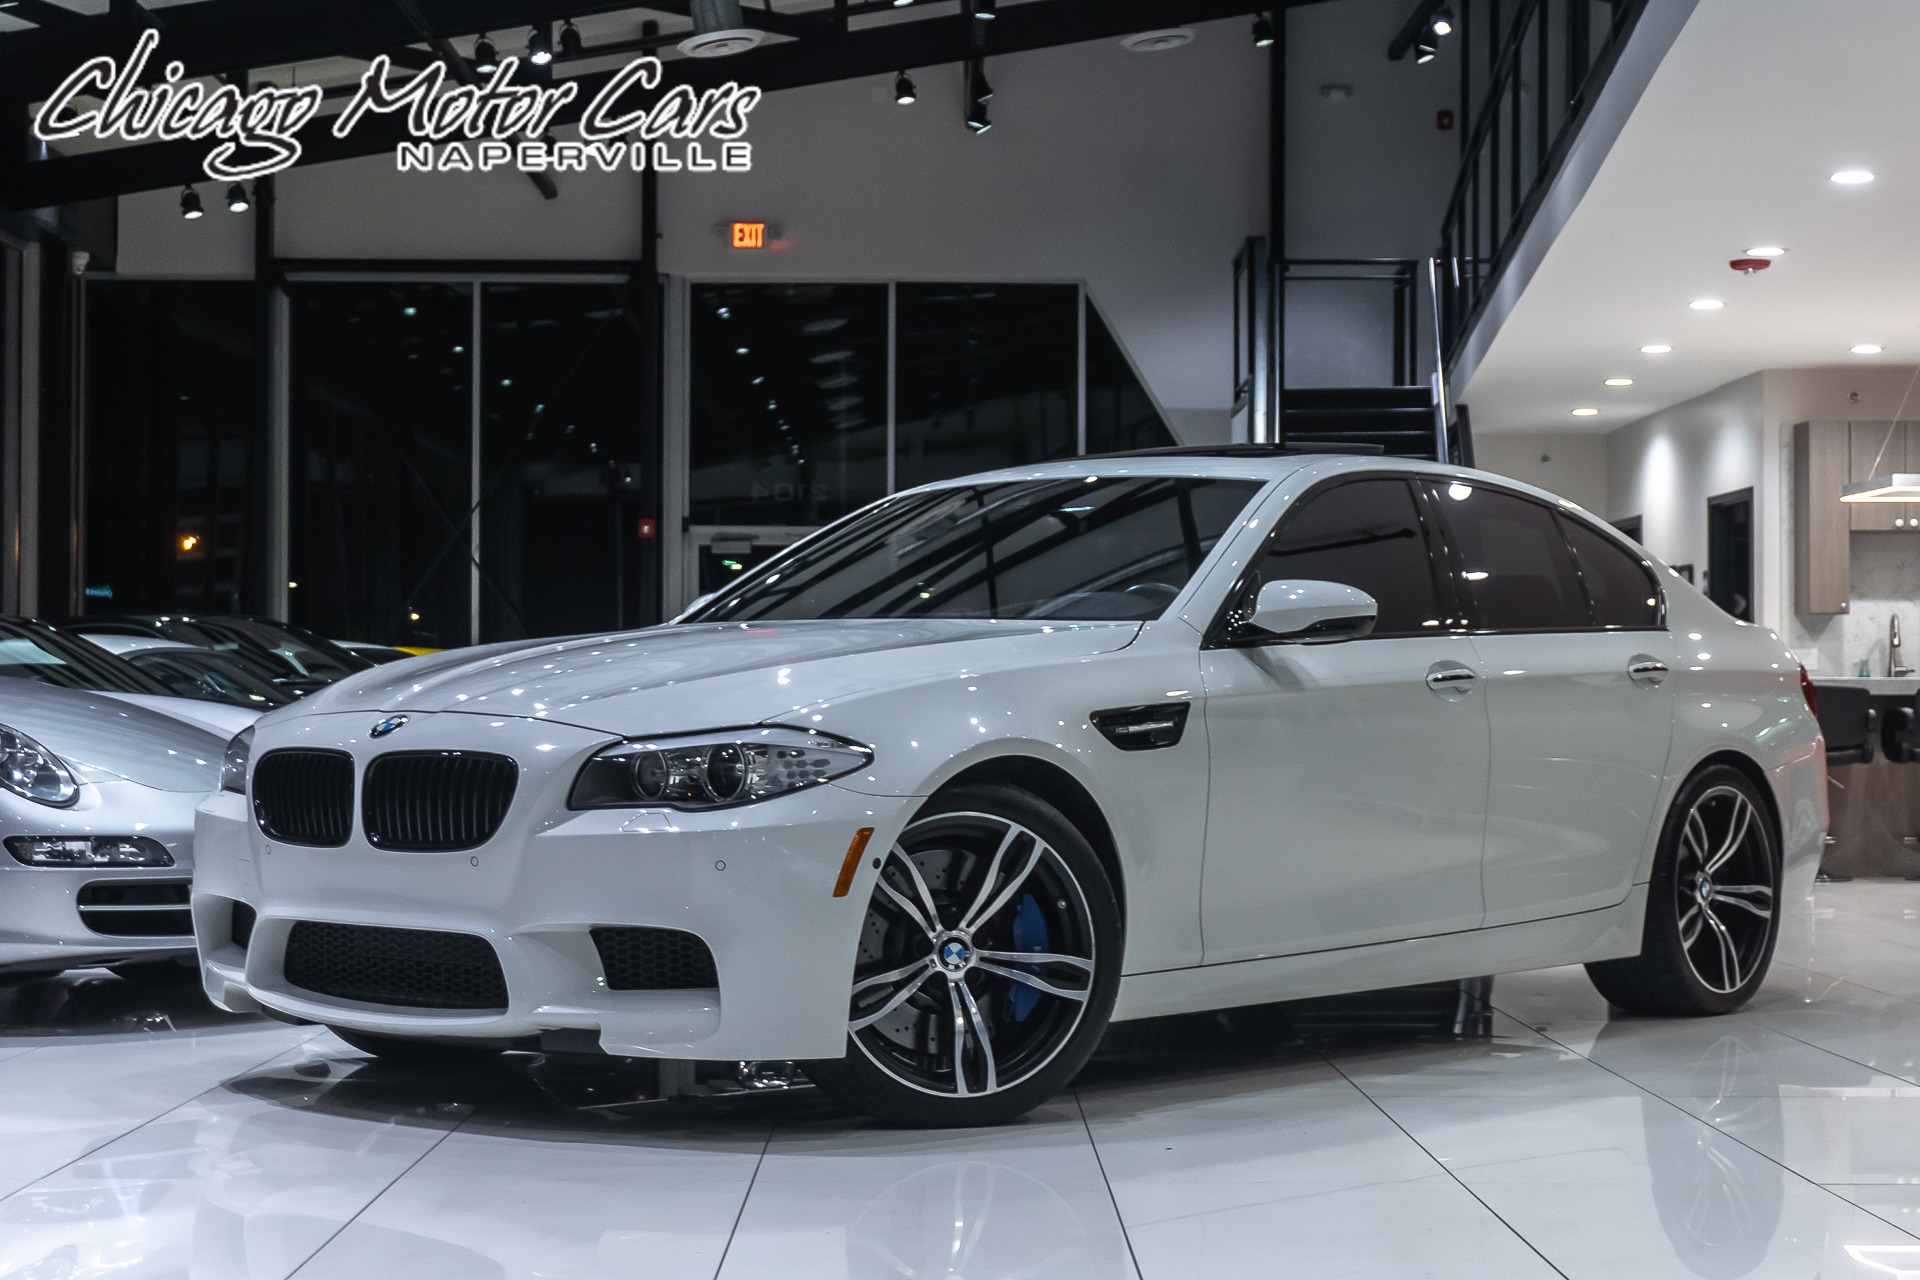 Used 2013 Bmw M5 Sedan Msrp 100k Executive Package For Sale Special Pricing Chicago Motor Cars Stock 16408